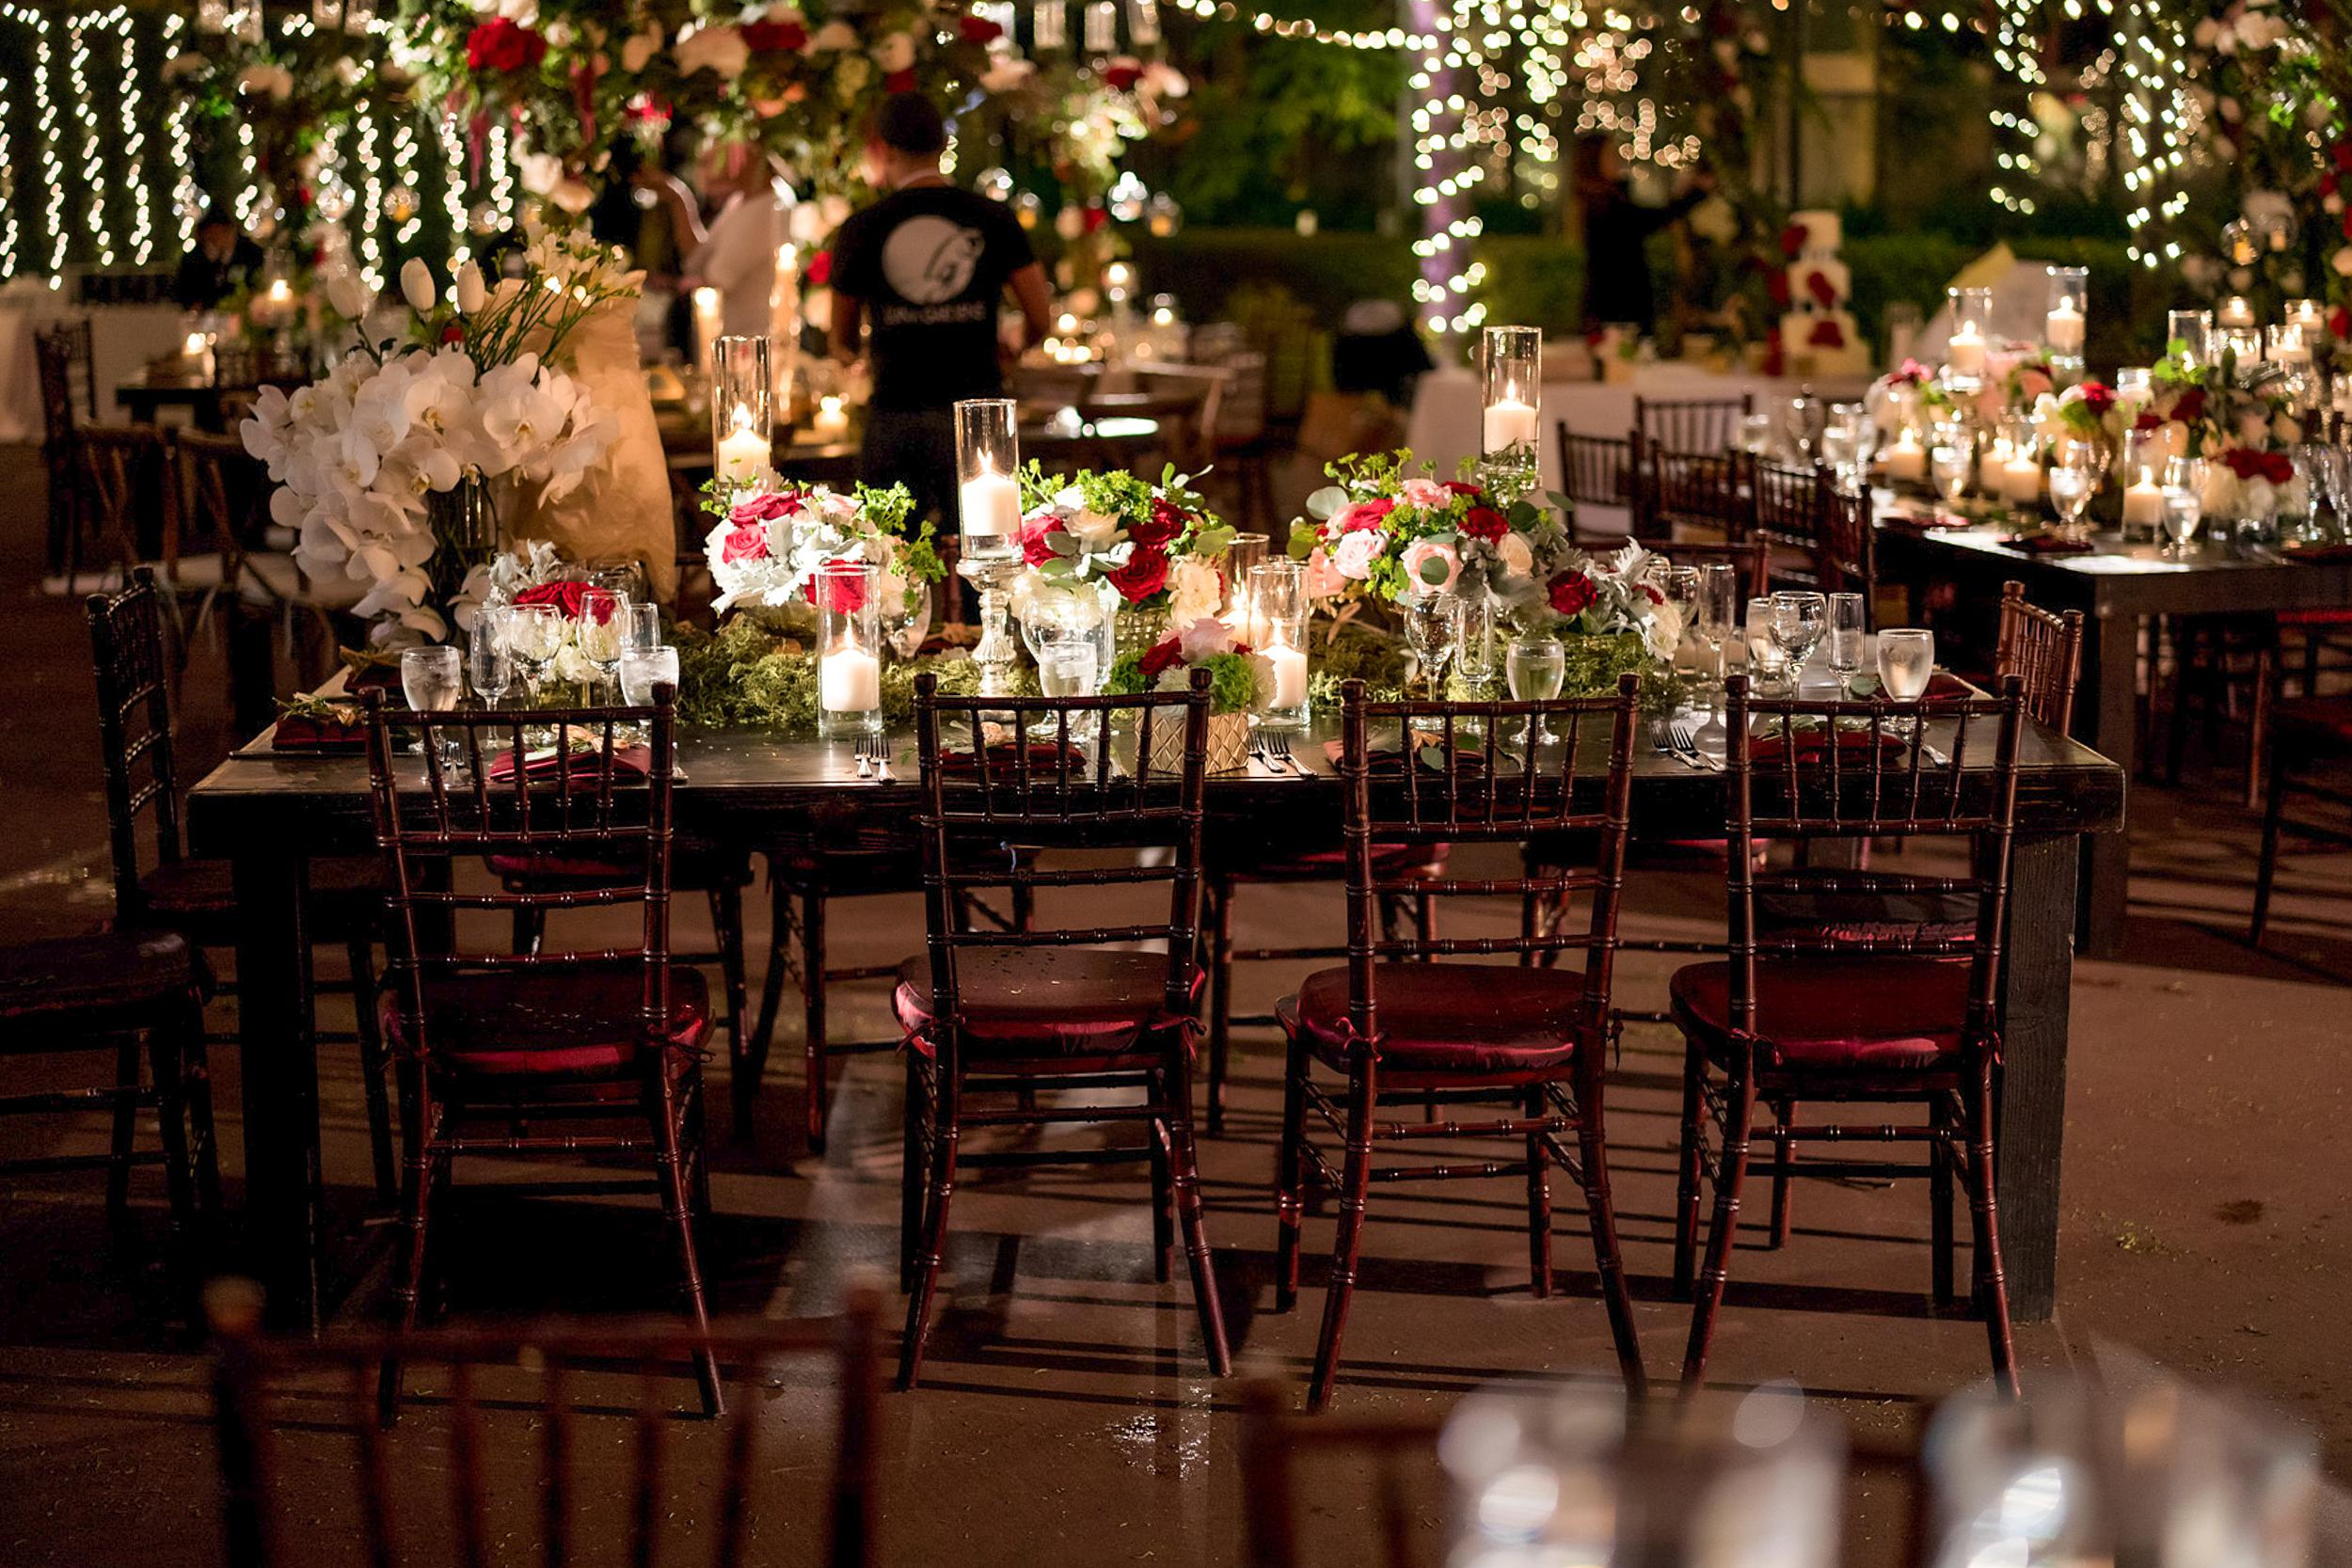 mountaingate-country-club-wedding-CJ-21.jpg